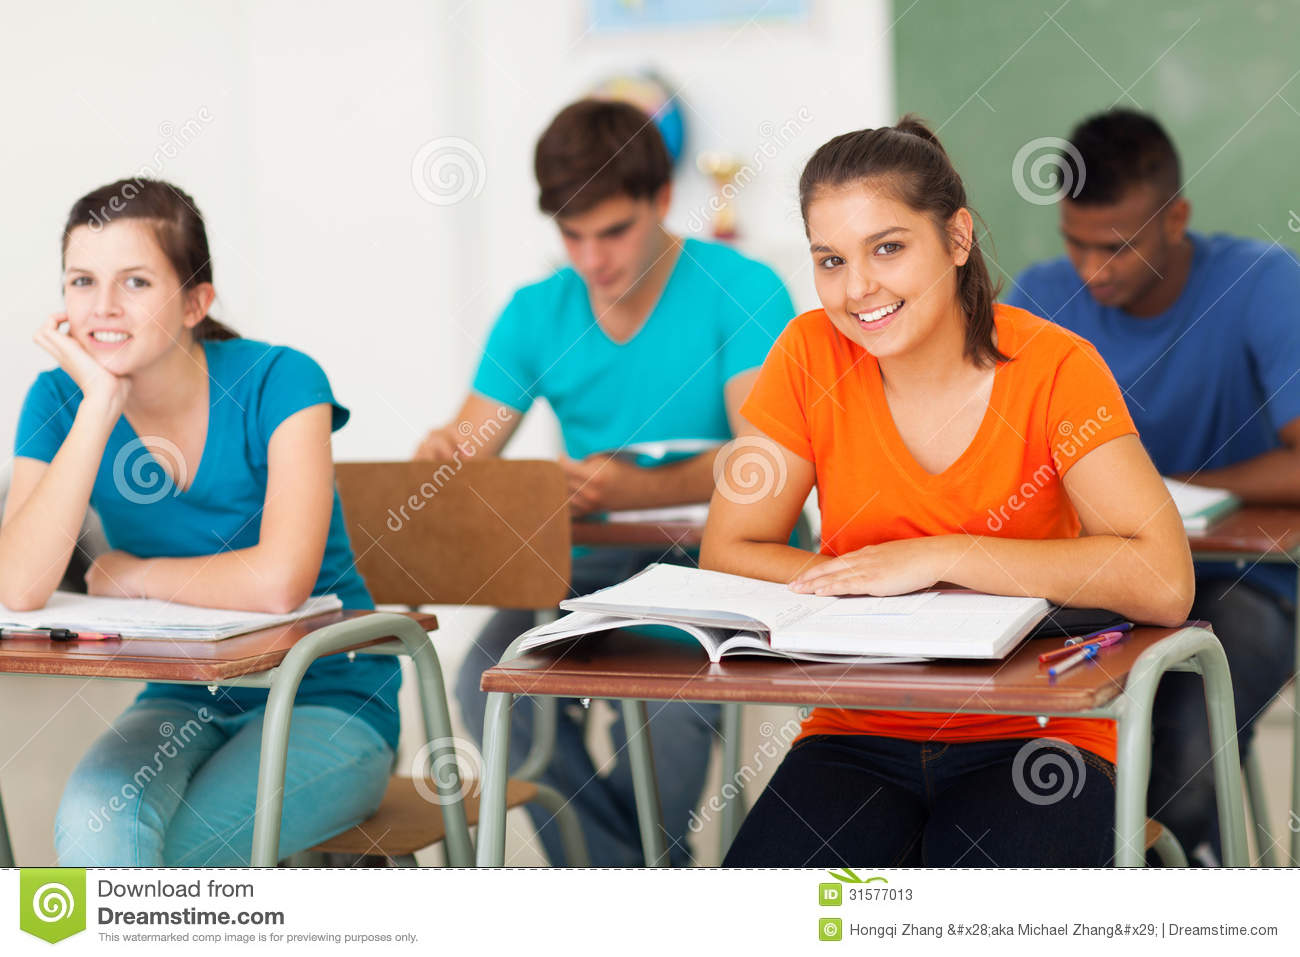 Group Students Classroom Stock Photos - Image: 31577013